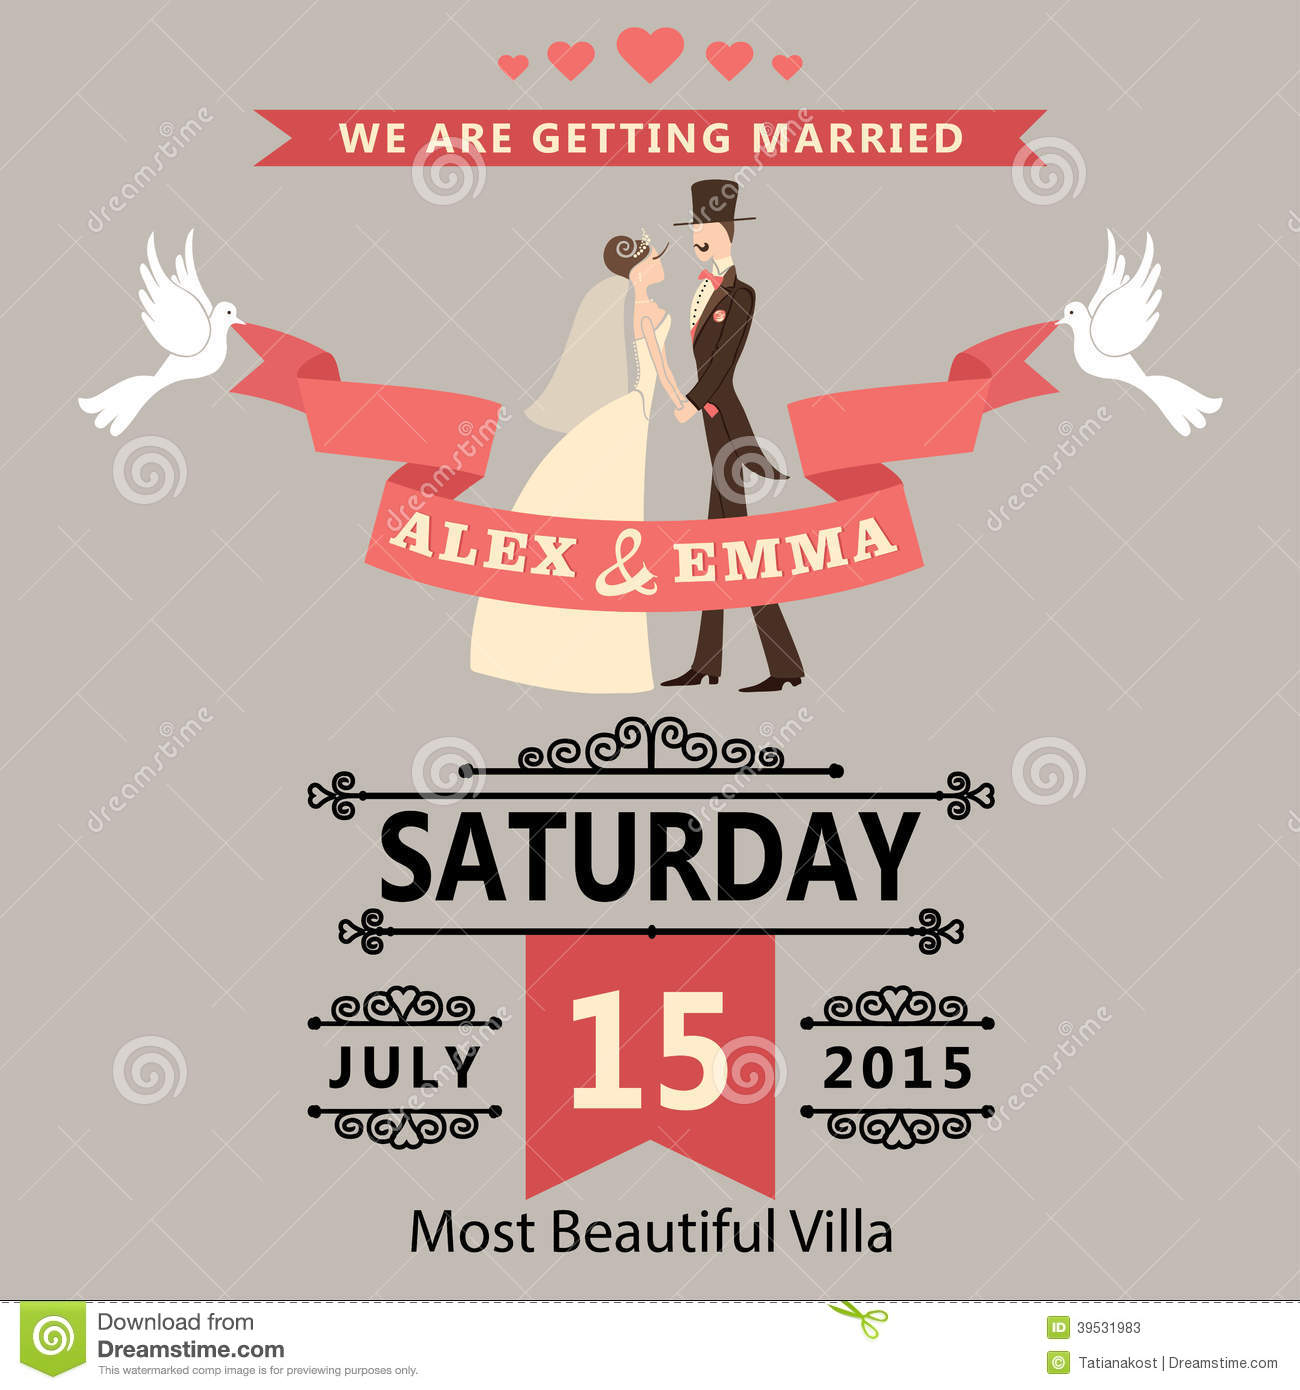 Wedding Invitation With Cartoon Bride And GroomRe Stock Vector